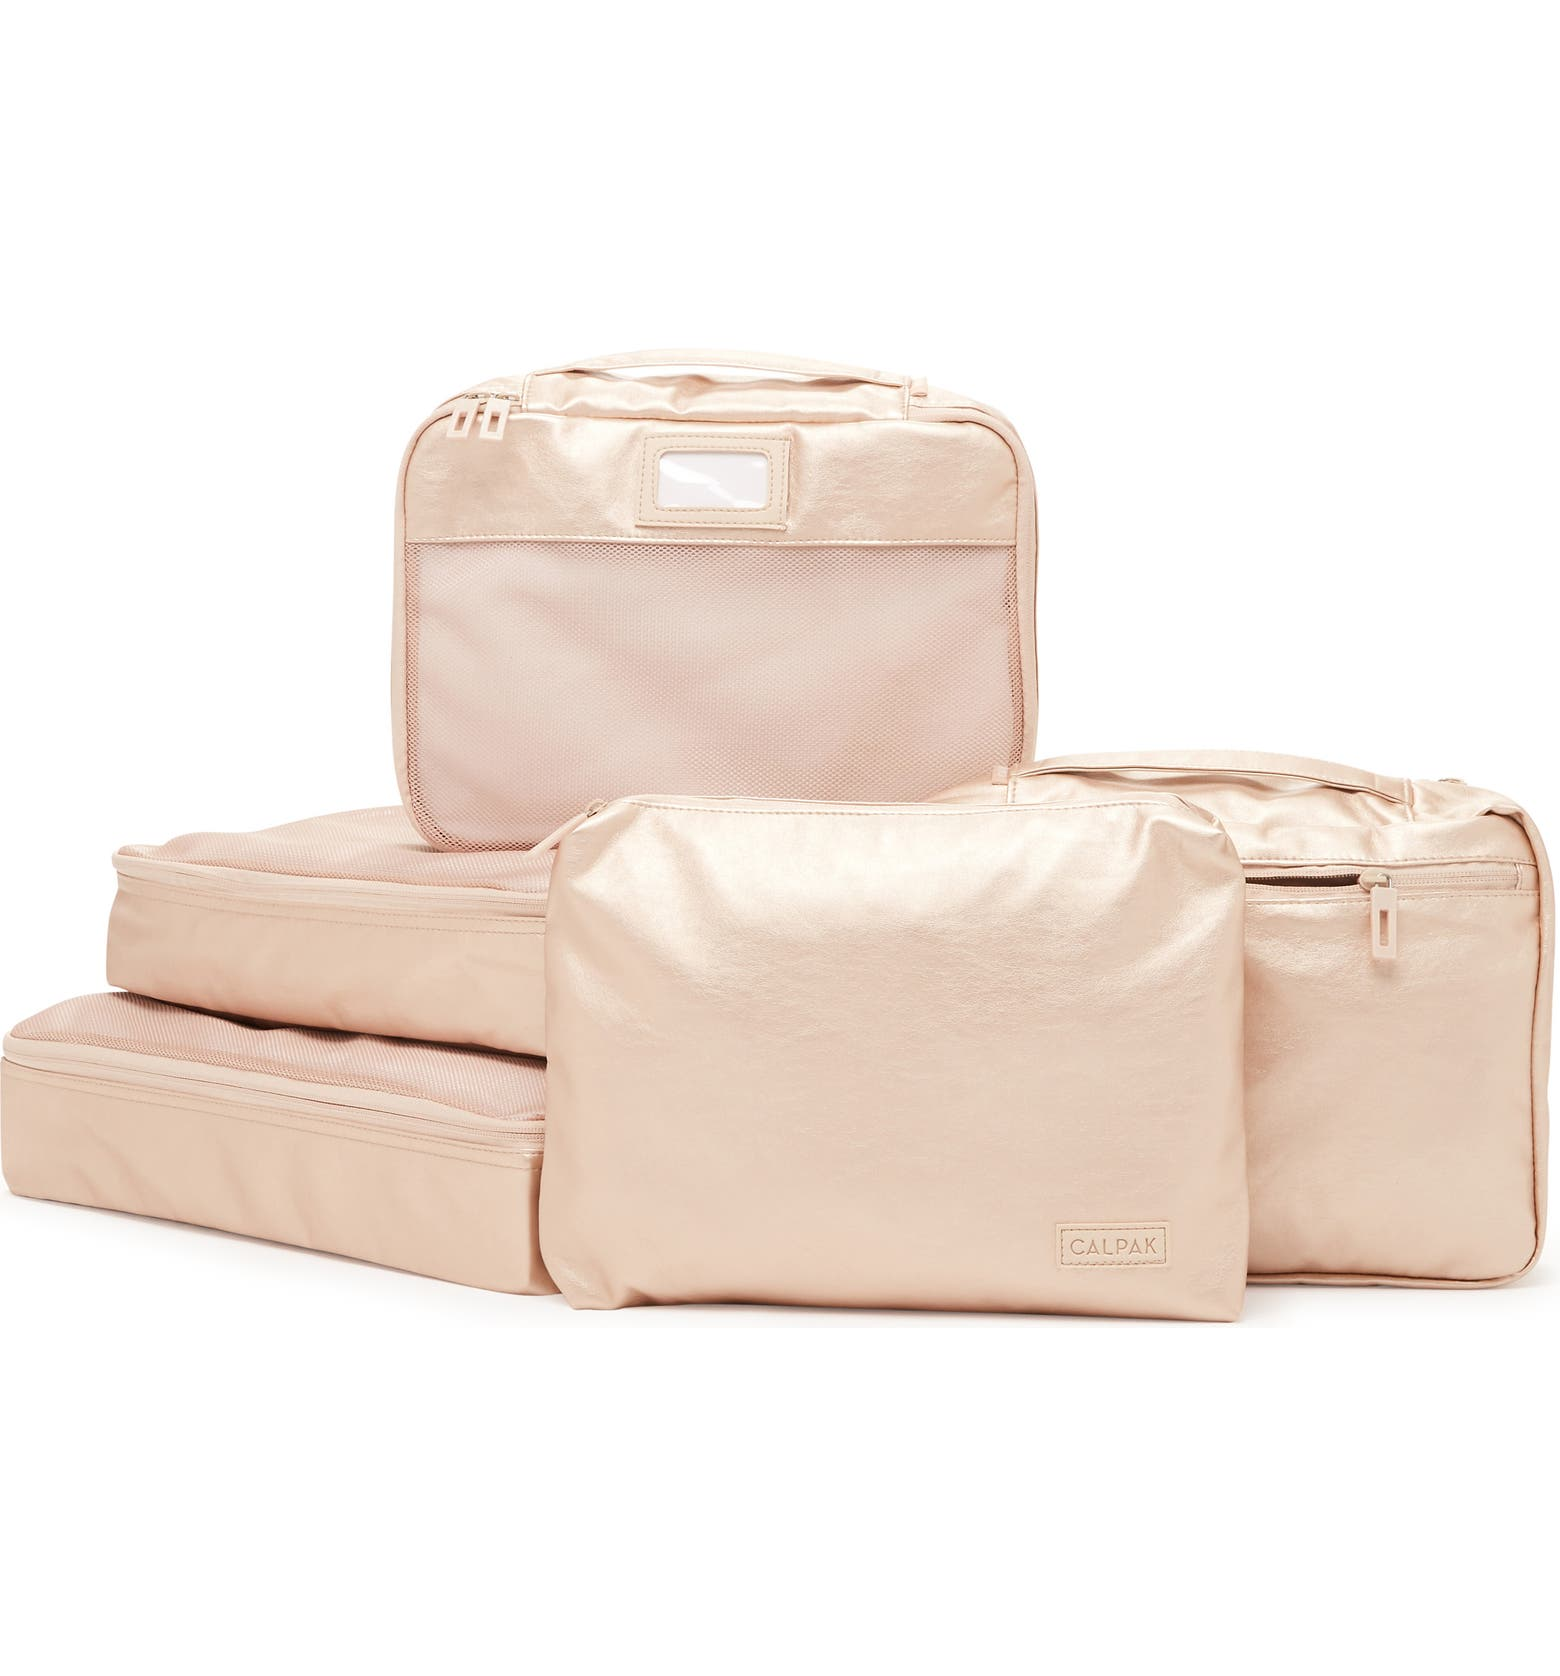 Calpak Travel Cubes